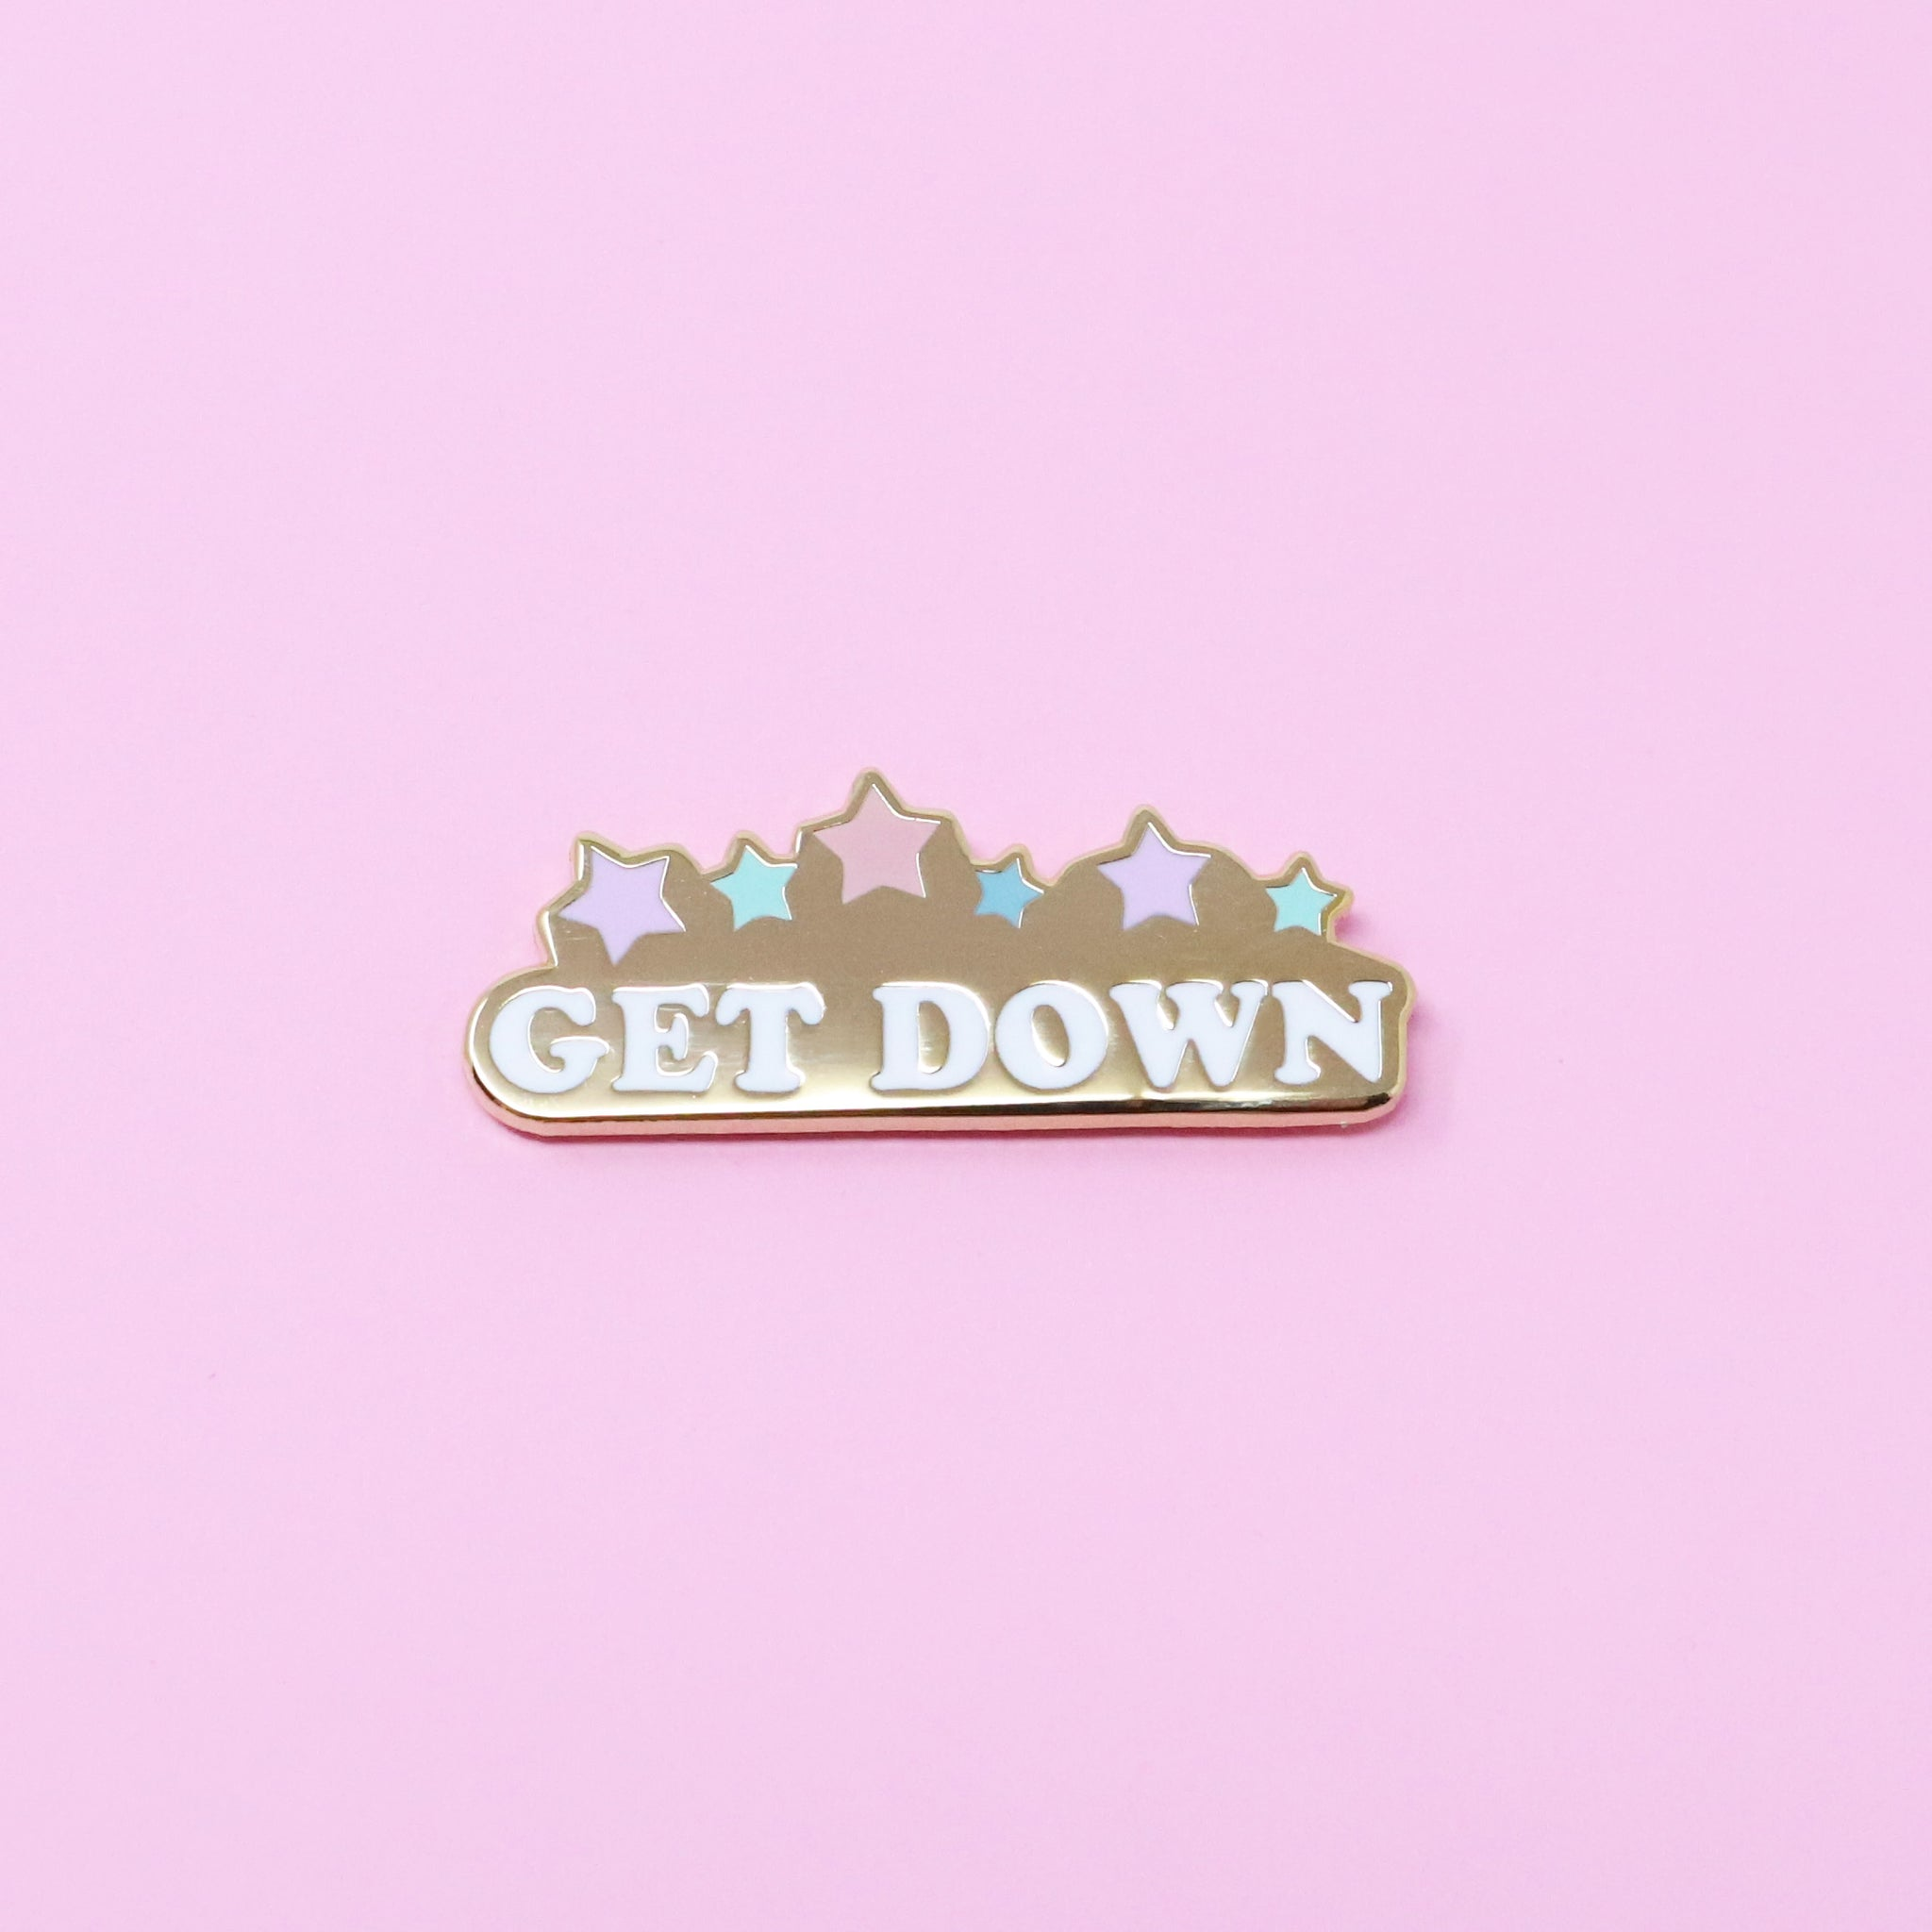 Get down enamel pin